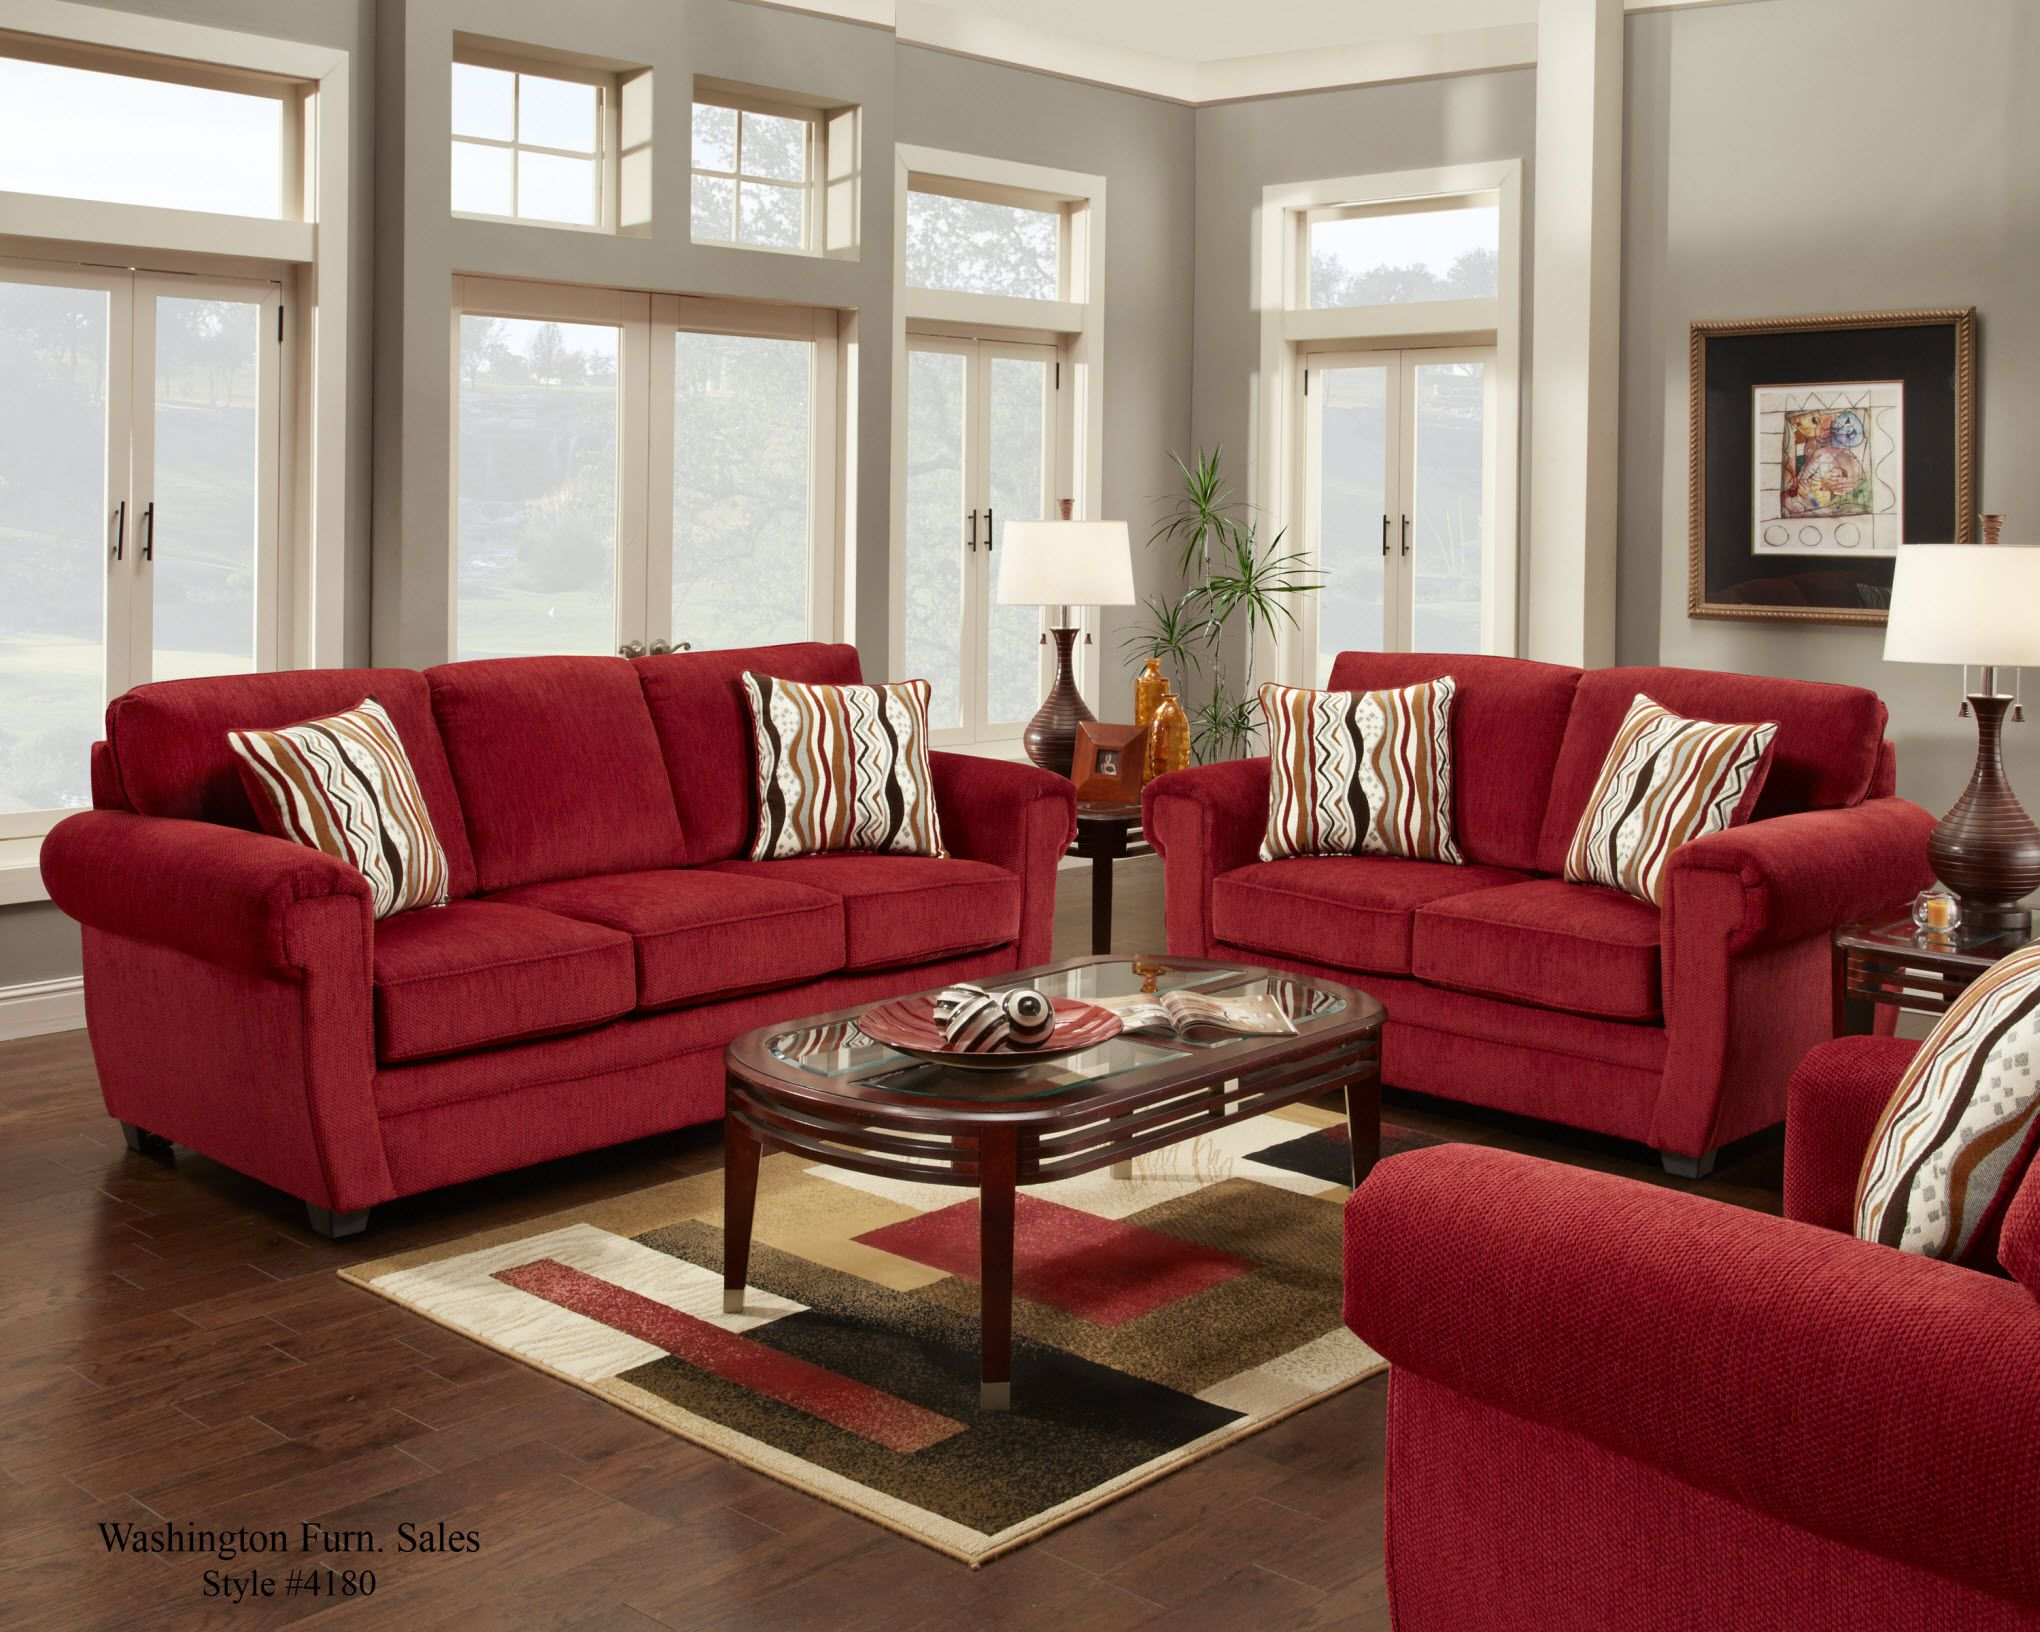 4180 washington samson red sofa and loveseat www for Living room ideas red